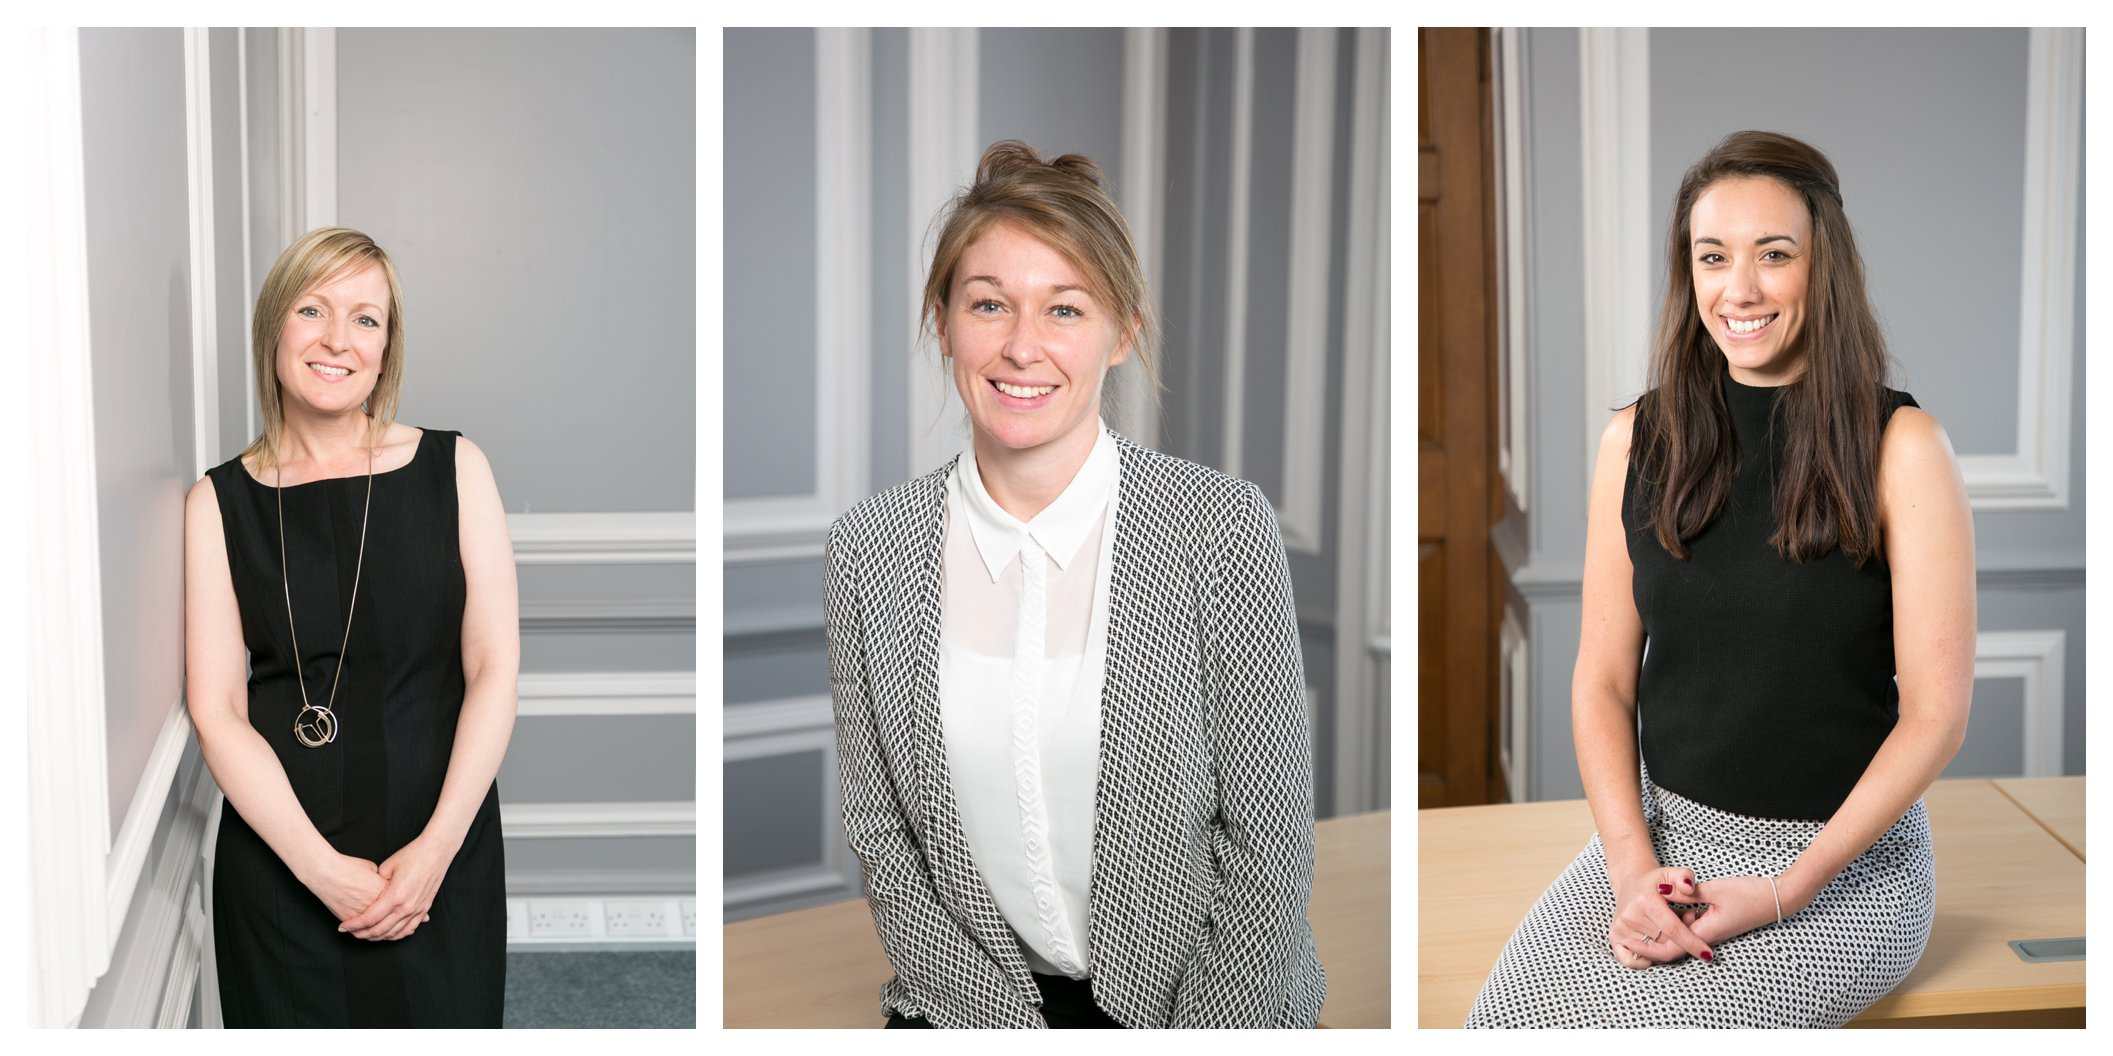 corporate lifestyle head shot photographs in Bury St Edmunds